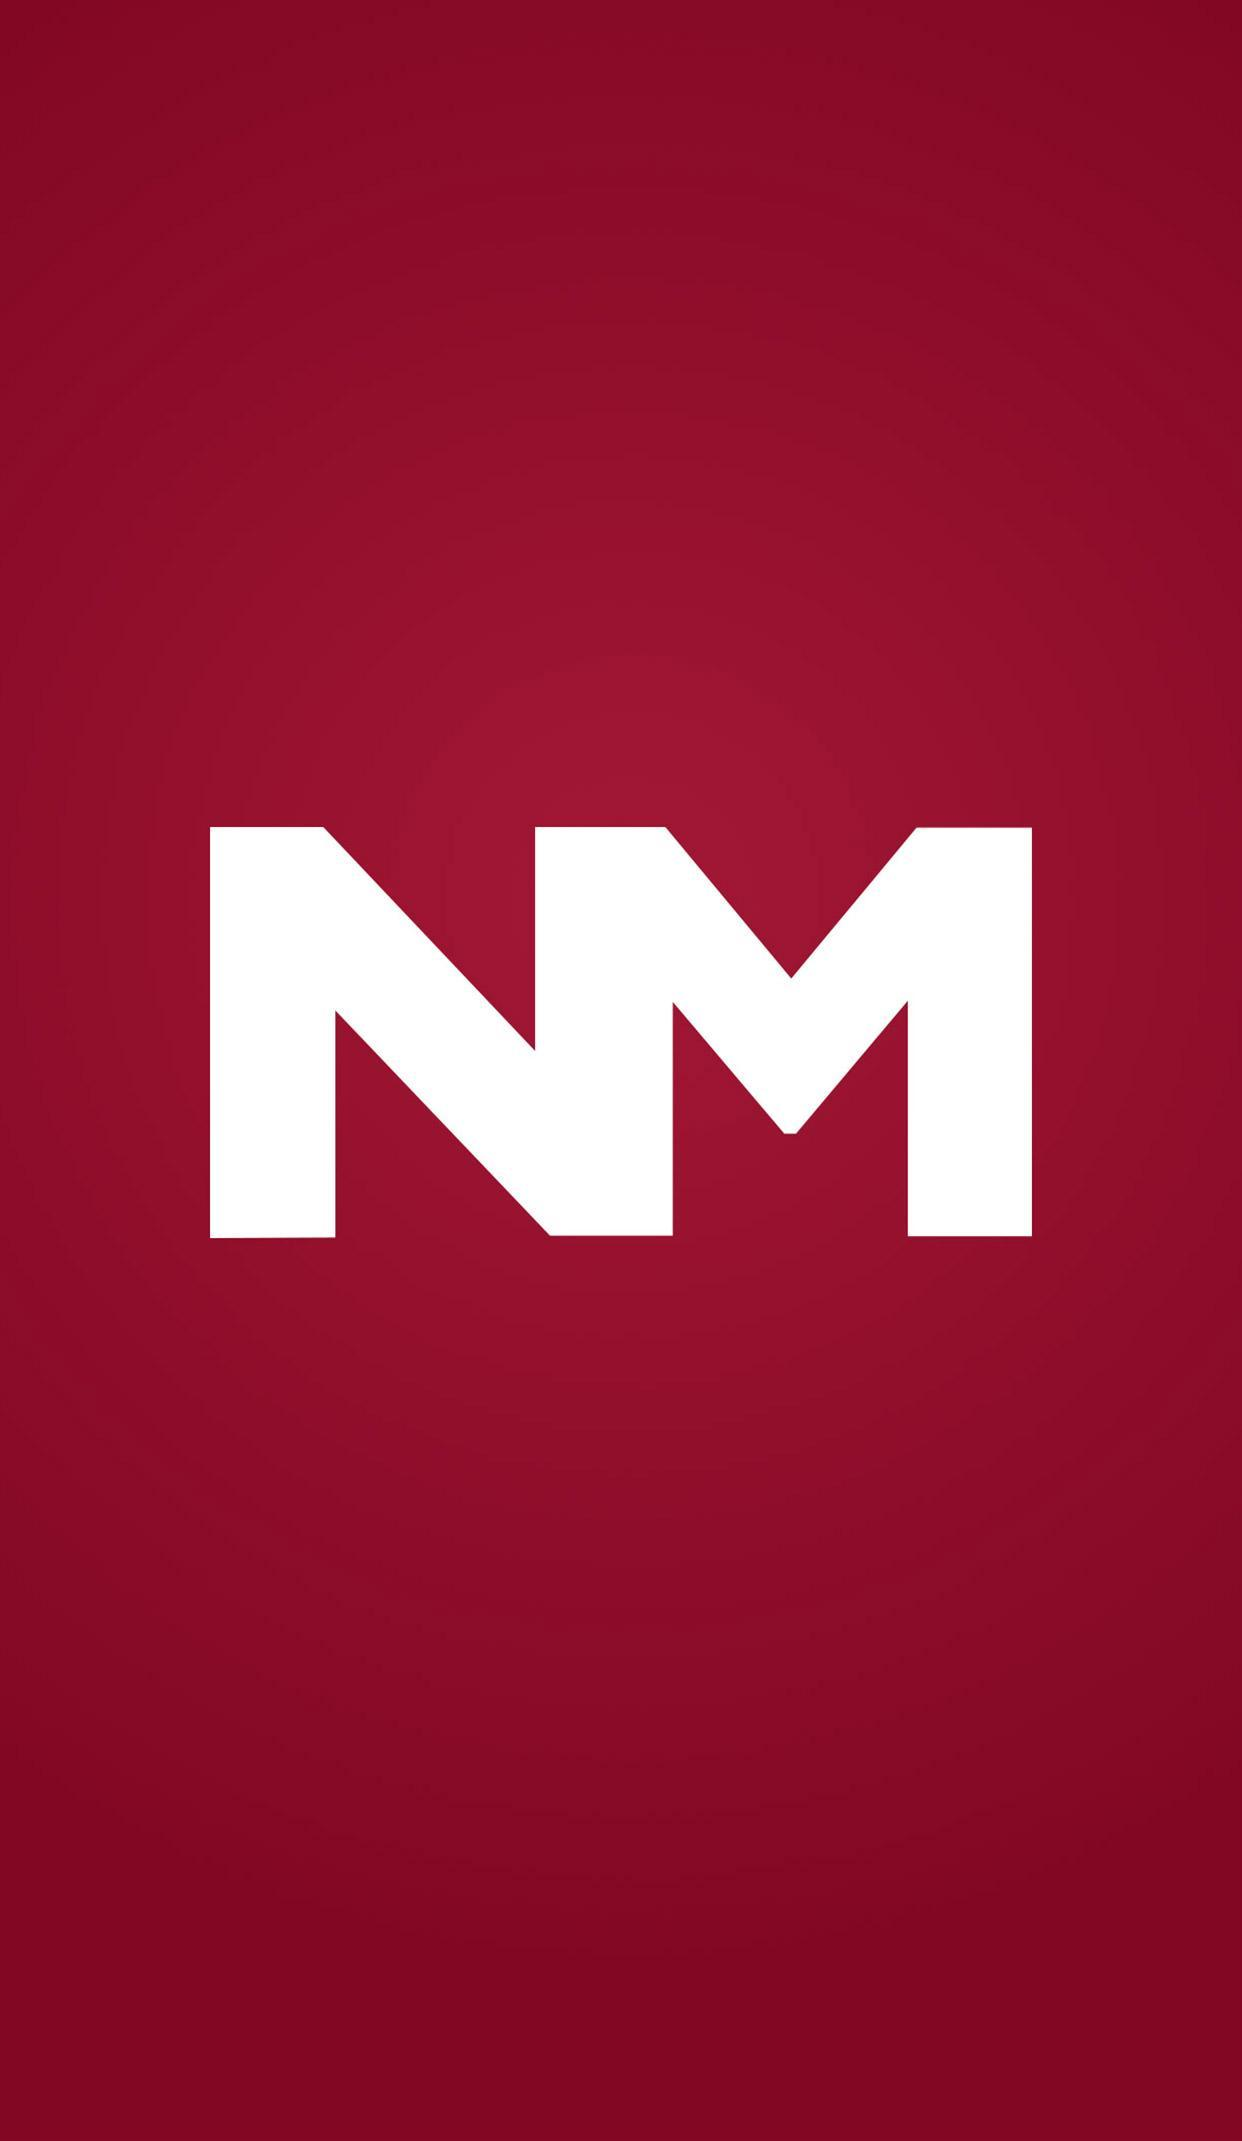 Nm Noticias For Android Apk Download